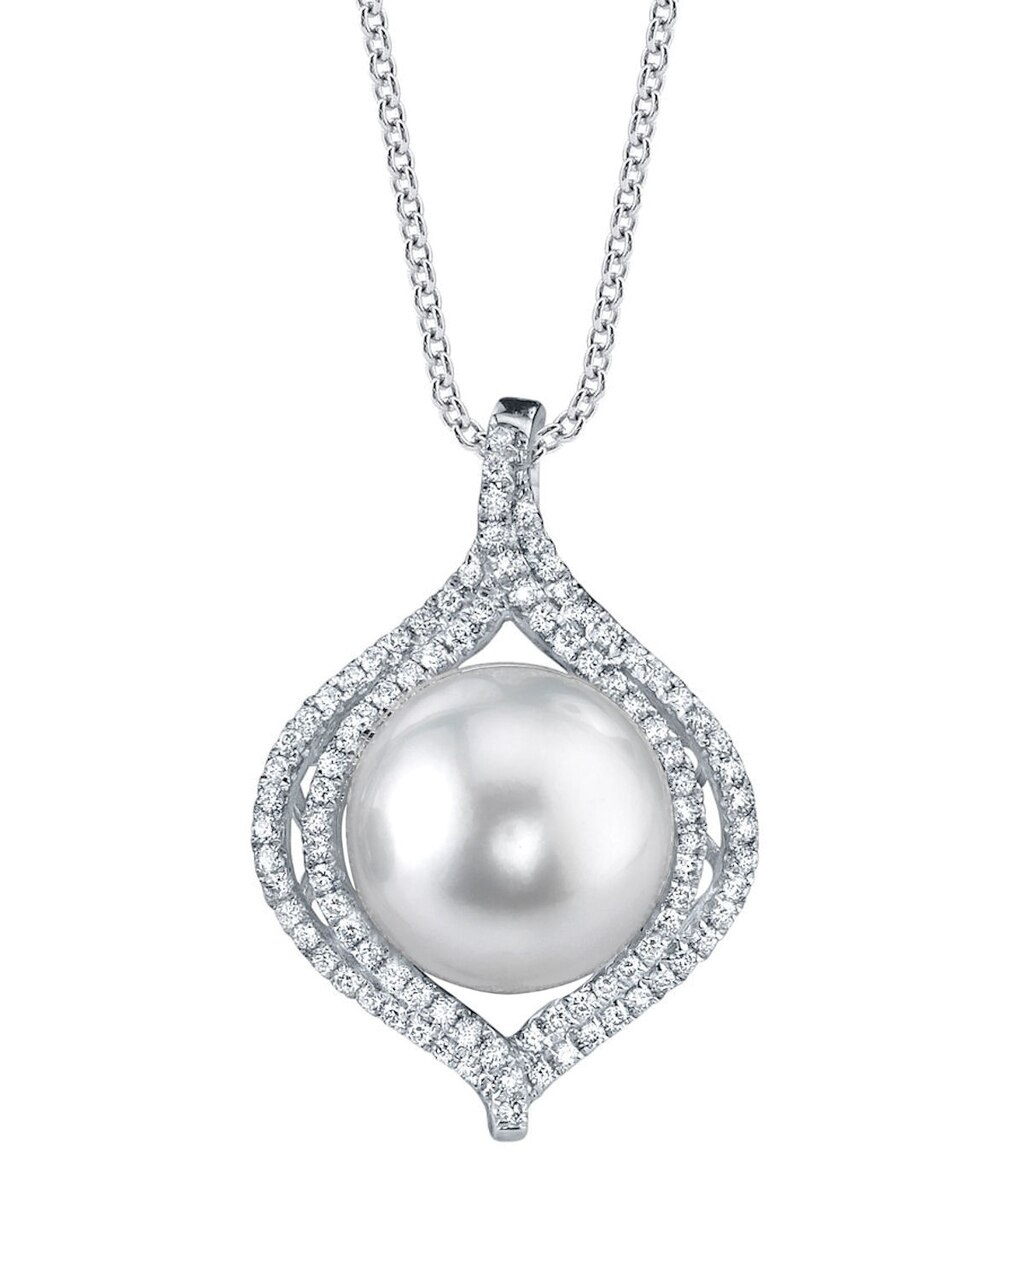 This exquisite pendant features an 12.0-13.0mm White South Sea Pearl, handpicked for its luminous luster